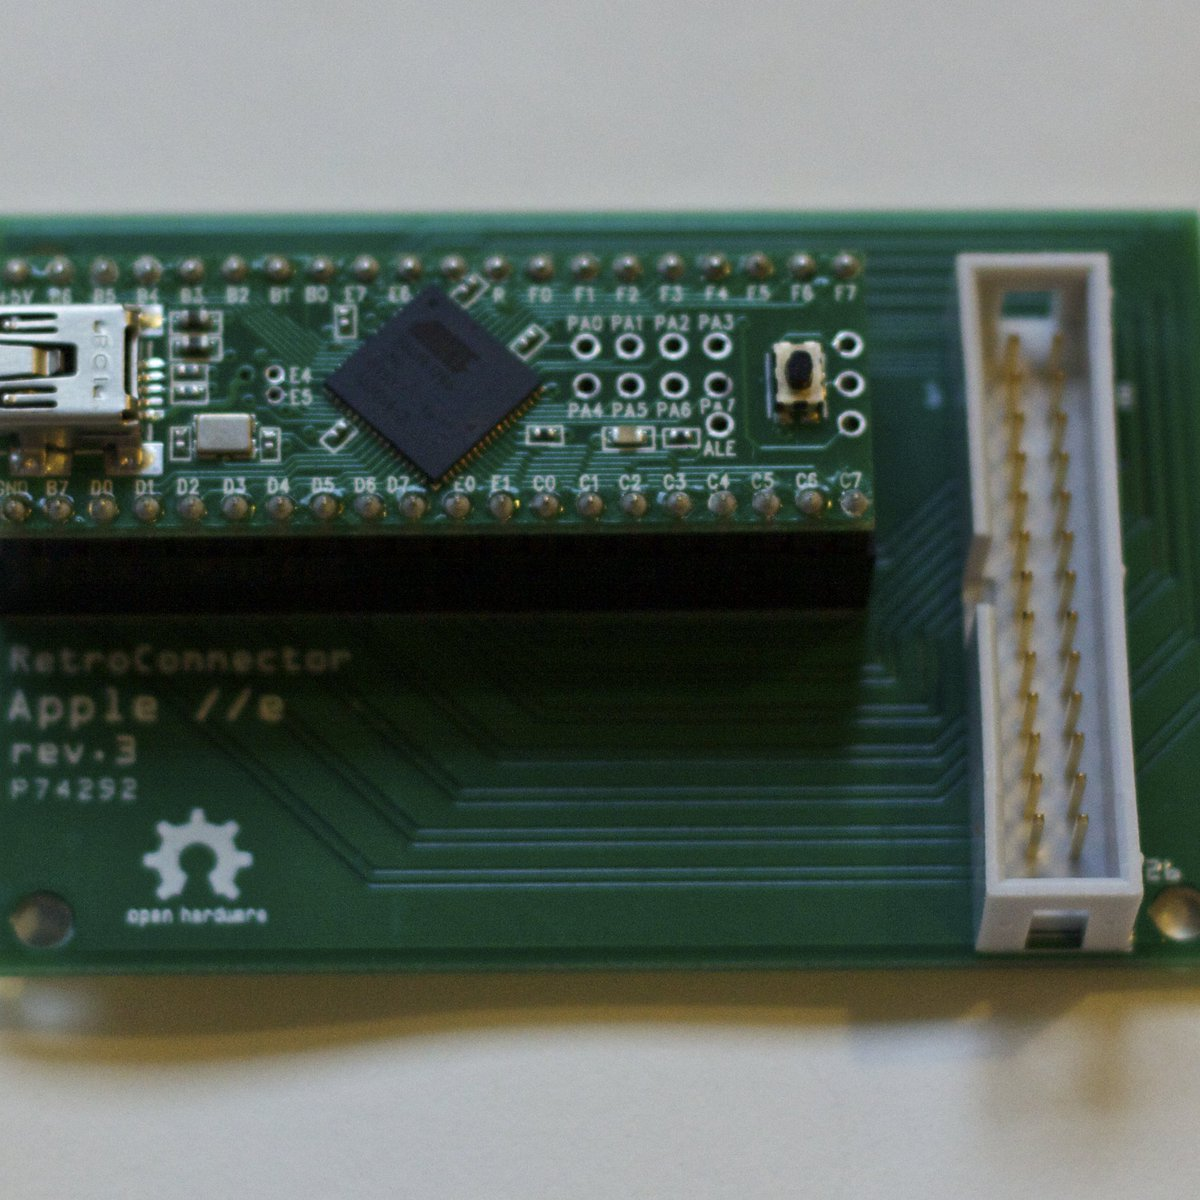 RetroConnector keyboard shield for Apple IIe from Option8, LLC on Tindie